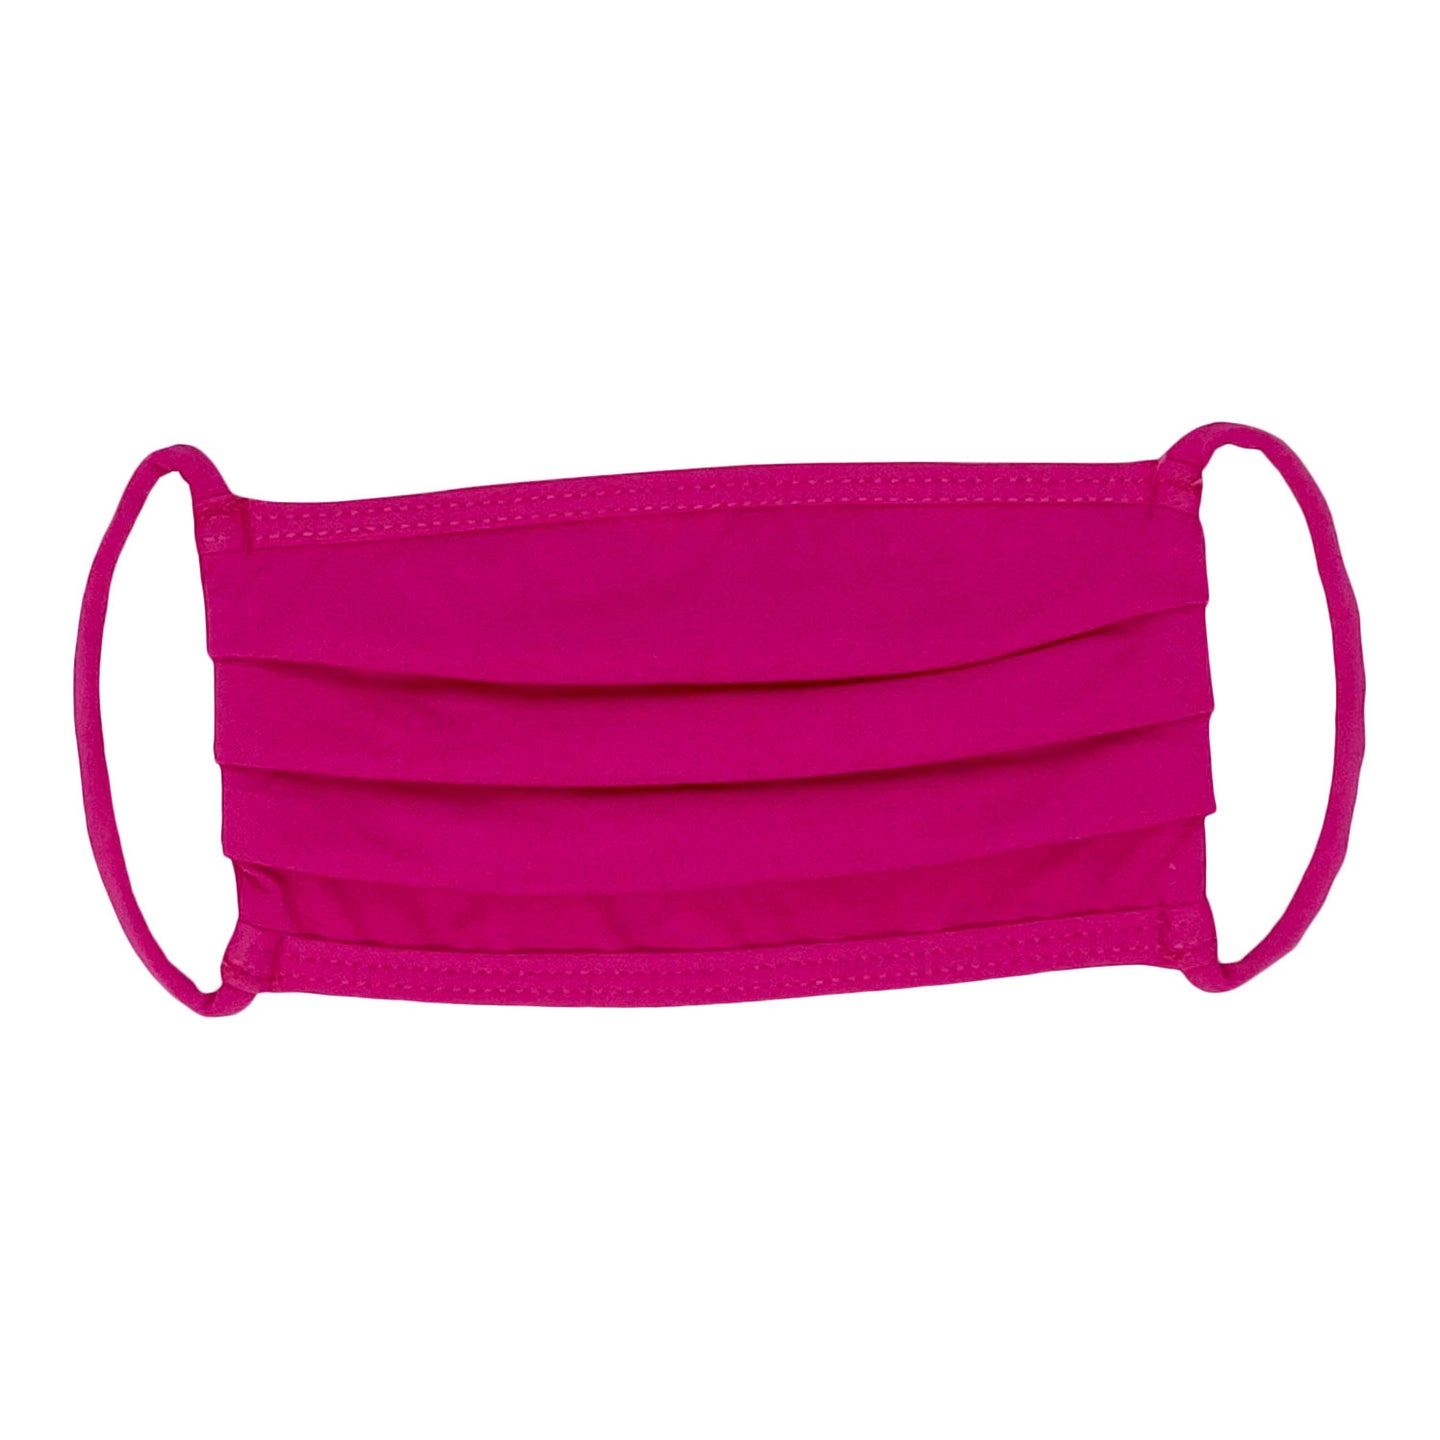 Children's Mask in Fuchsia